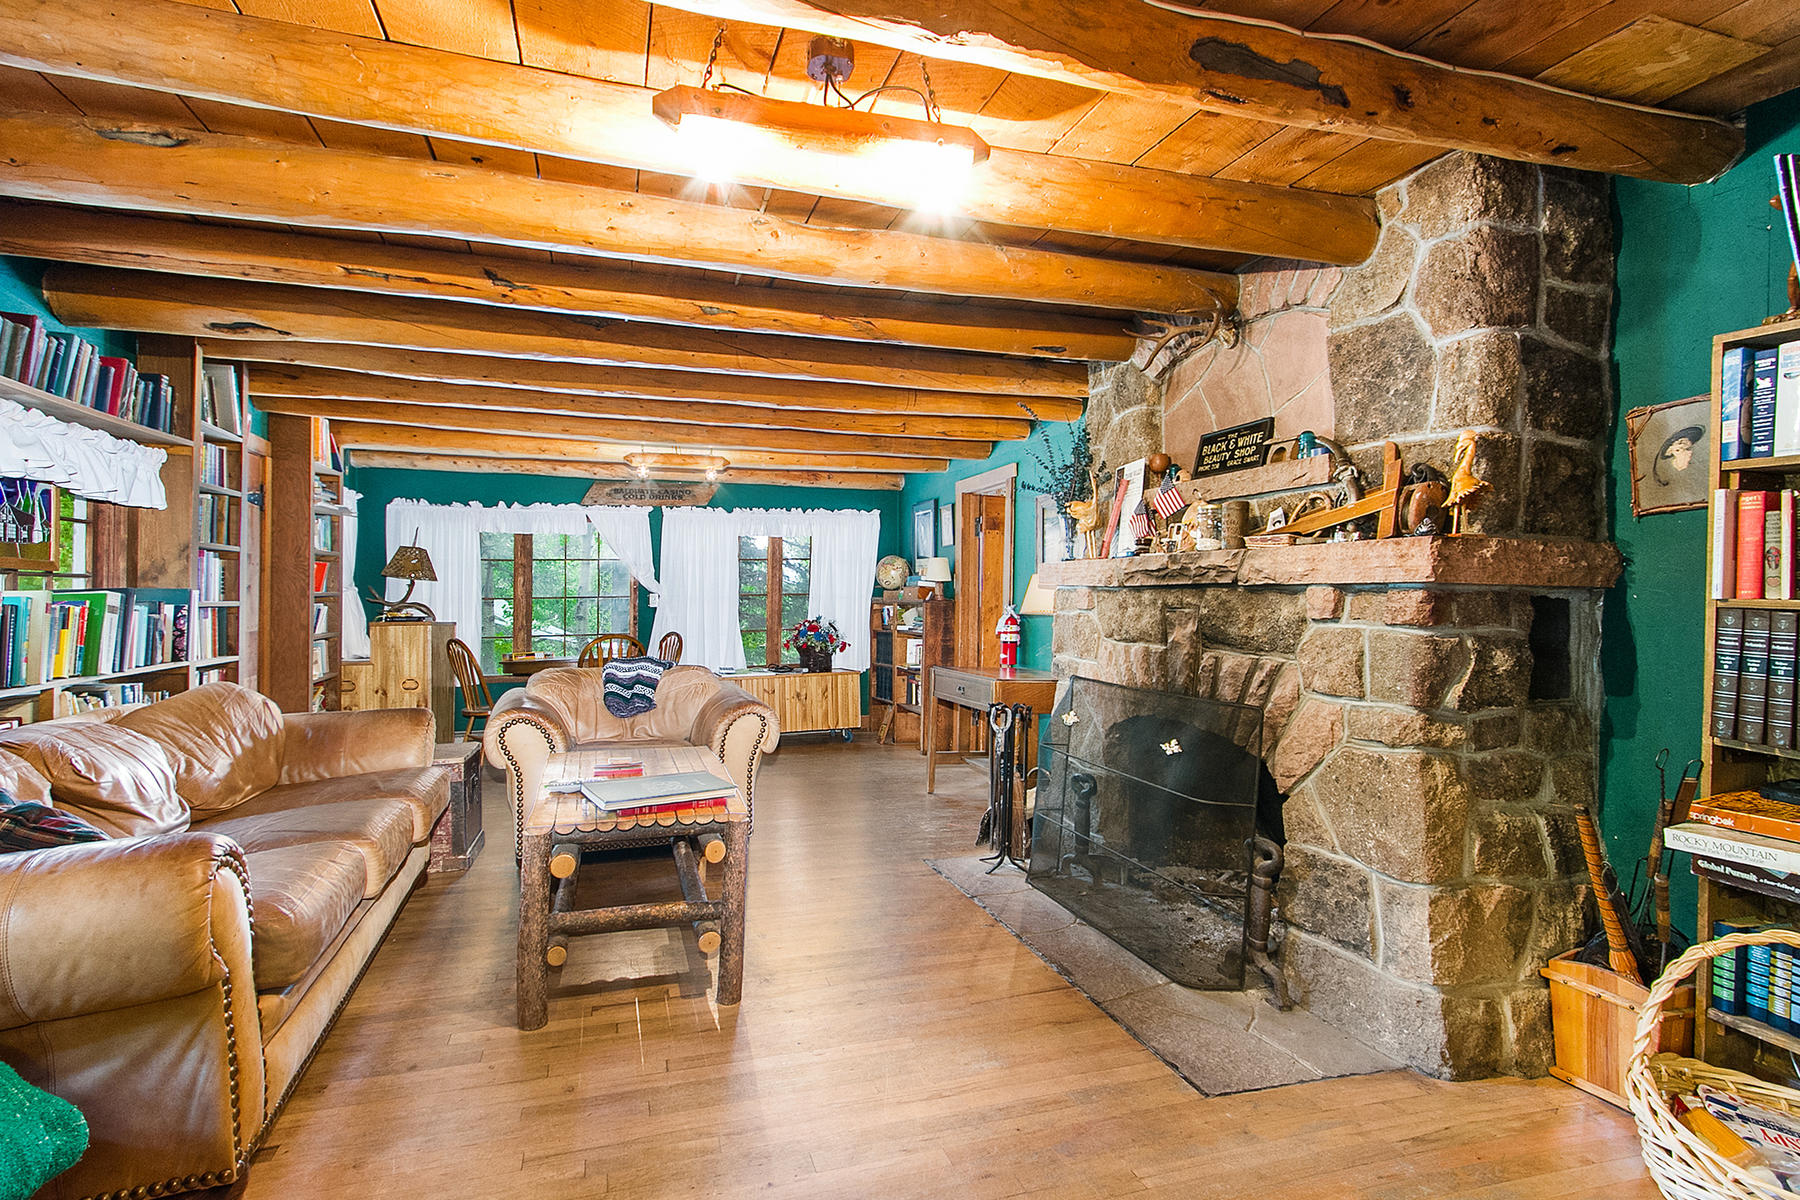 Additional photo for property listing at The Baldpate Inn 4900 Highway 7 Estes Park, Colorado 80517 United States